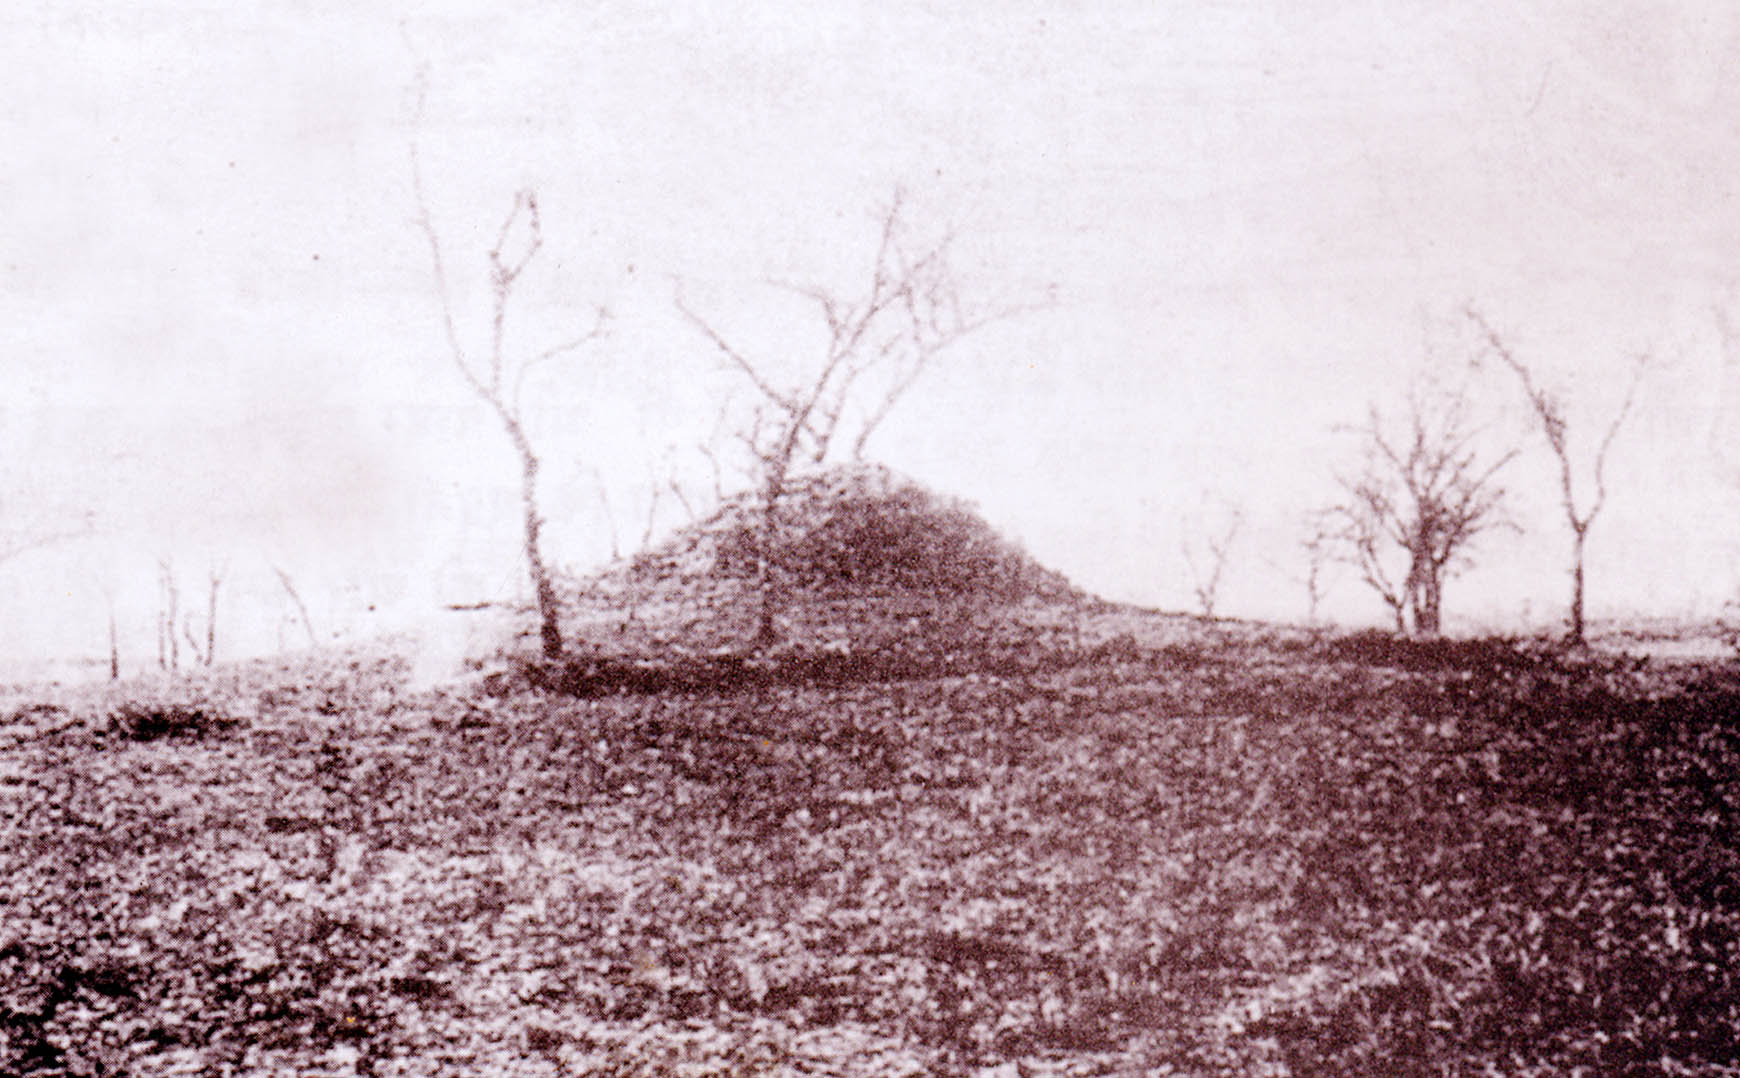 Tumulus above the hidden well